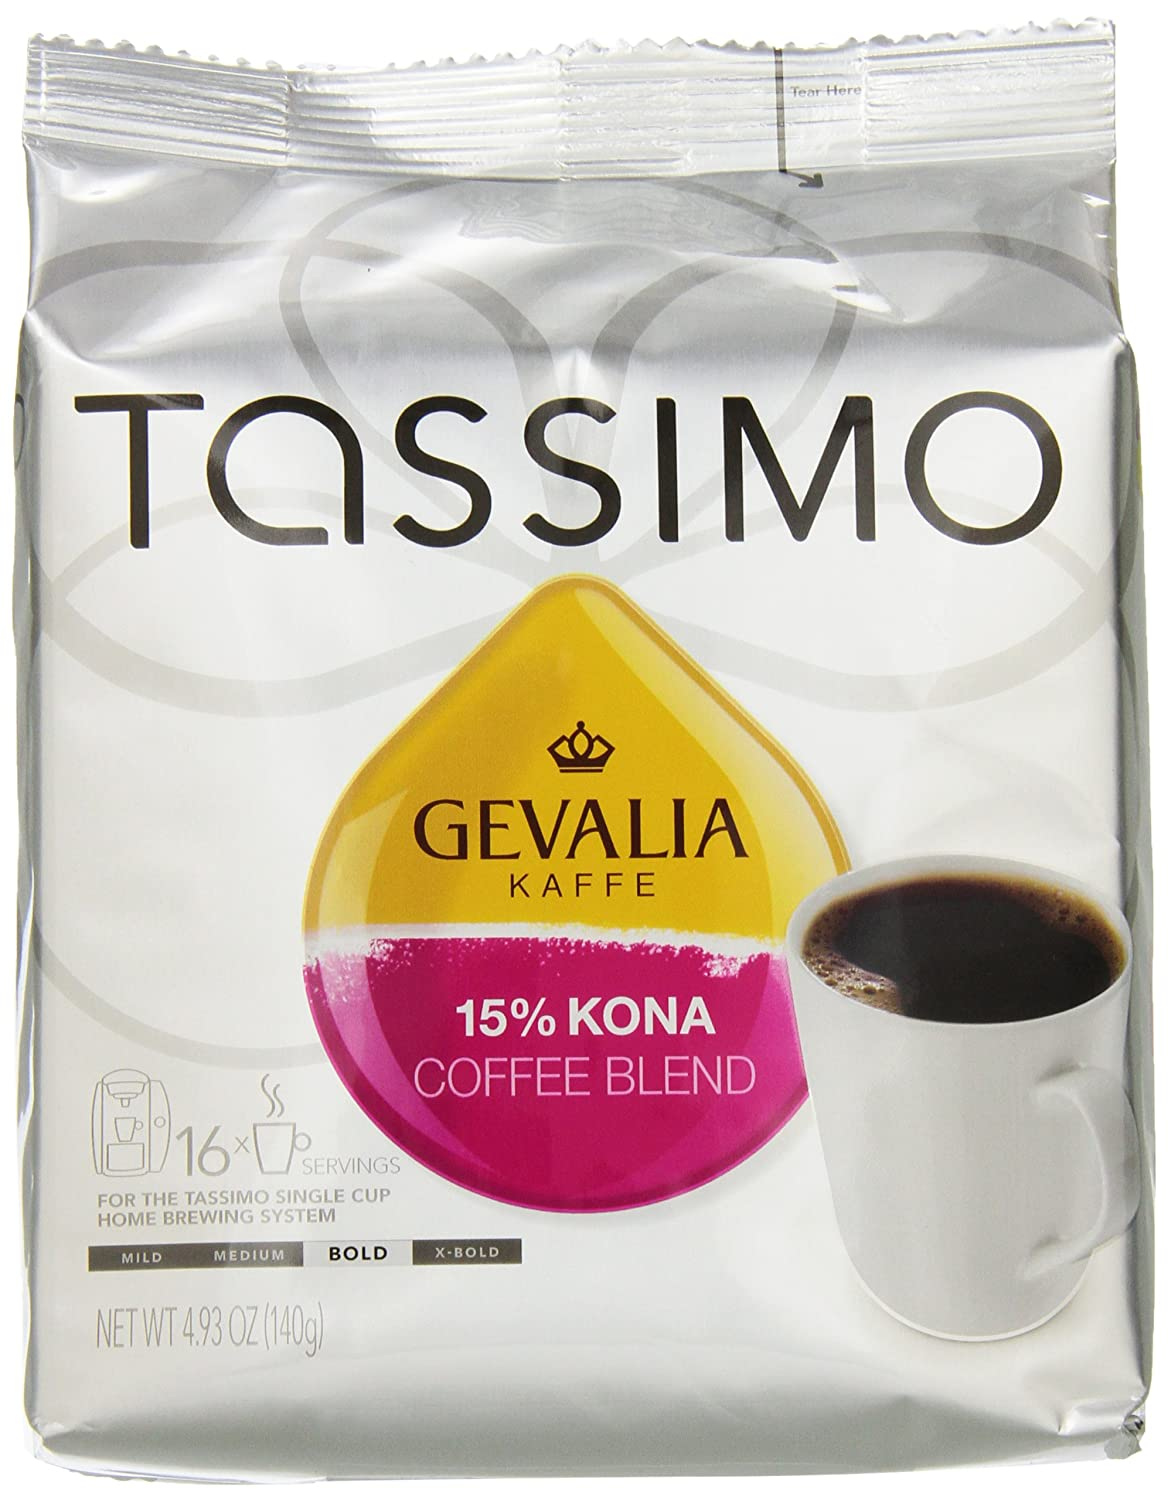 tassimo gevalia 15 kona coffee blend t discs bag 16 count ounce new fr ebay. Black Bedroom Furniture Sets. Home Design Ideas